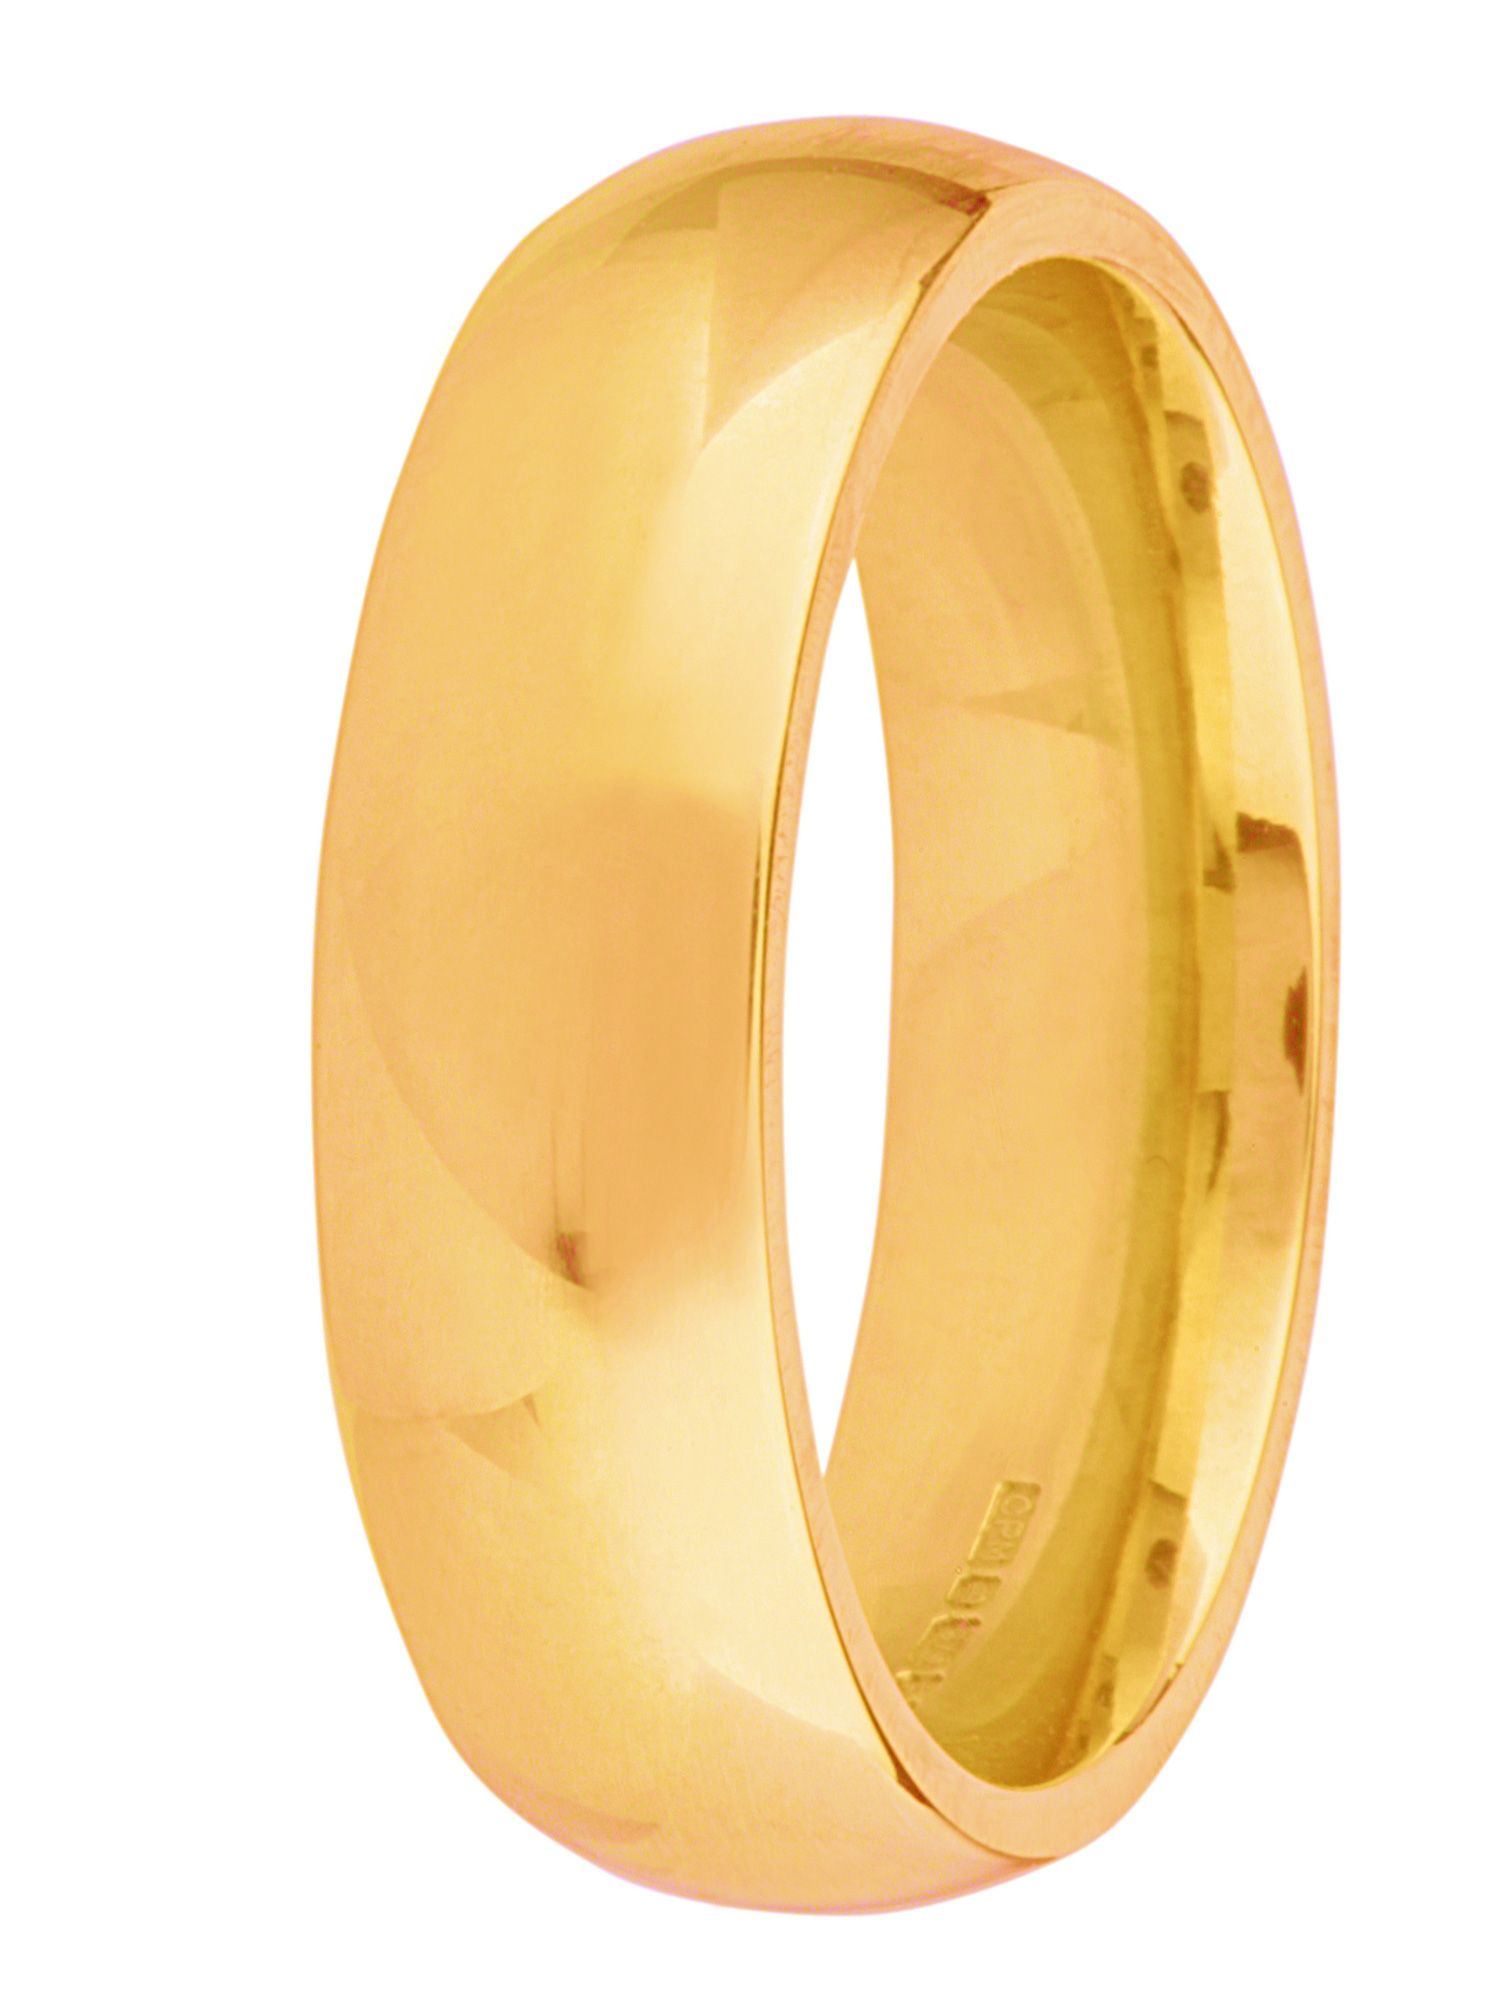 Grooms 9ct gold 6mm court wedding ring - Gold